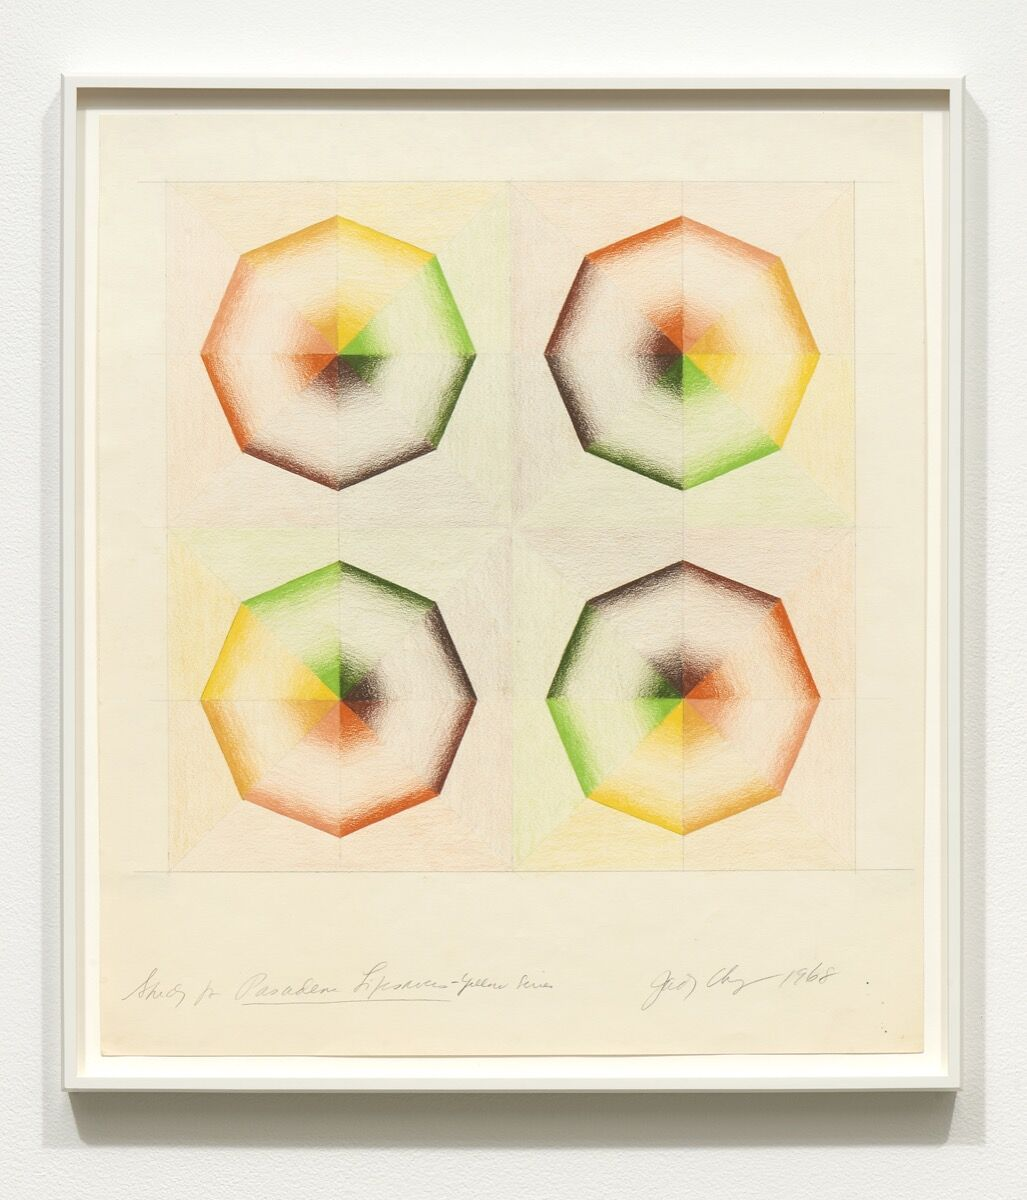 Judy Chicago, Study for Pasadena Lifesavers Yellow series, 1968. Courtesy of Jessica Silverman Gallery.